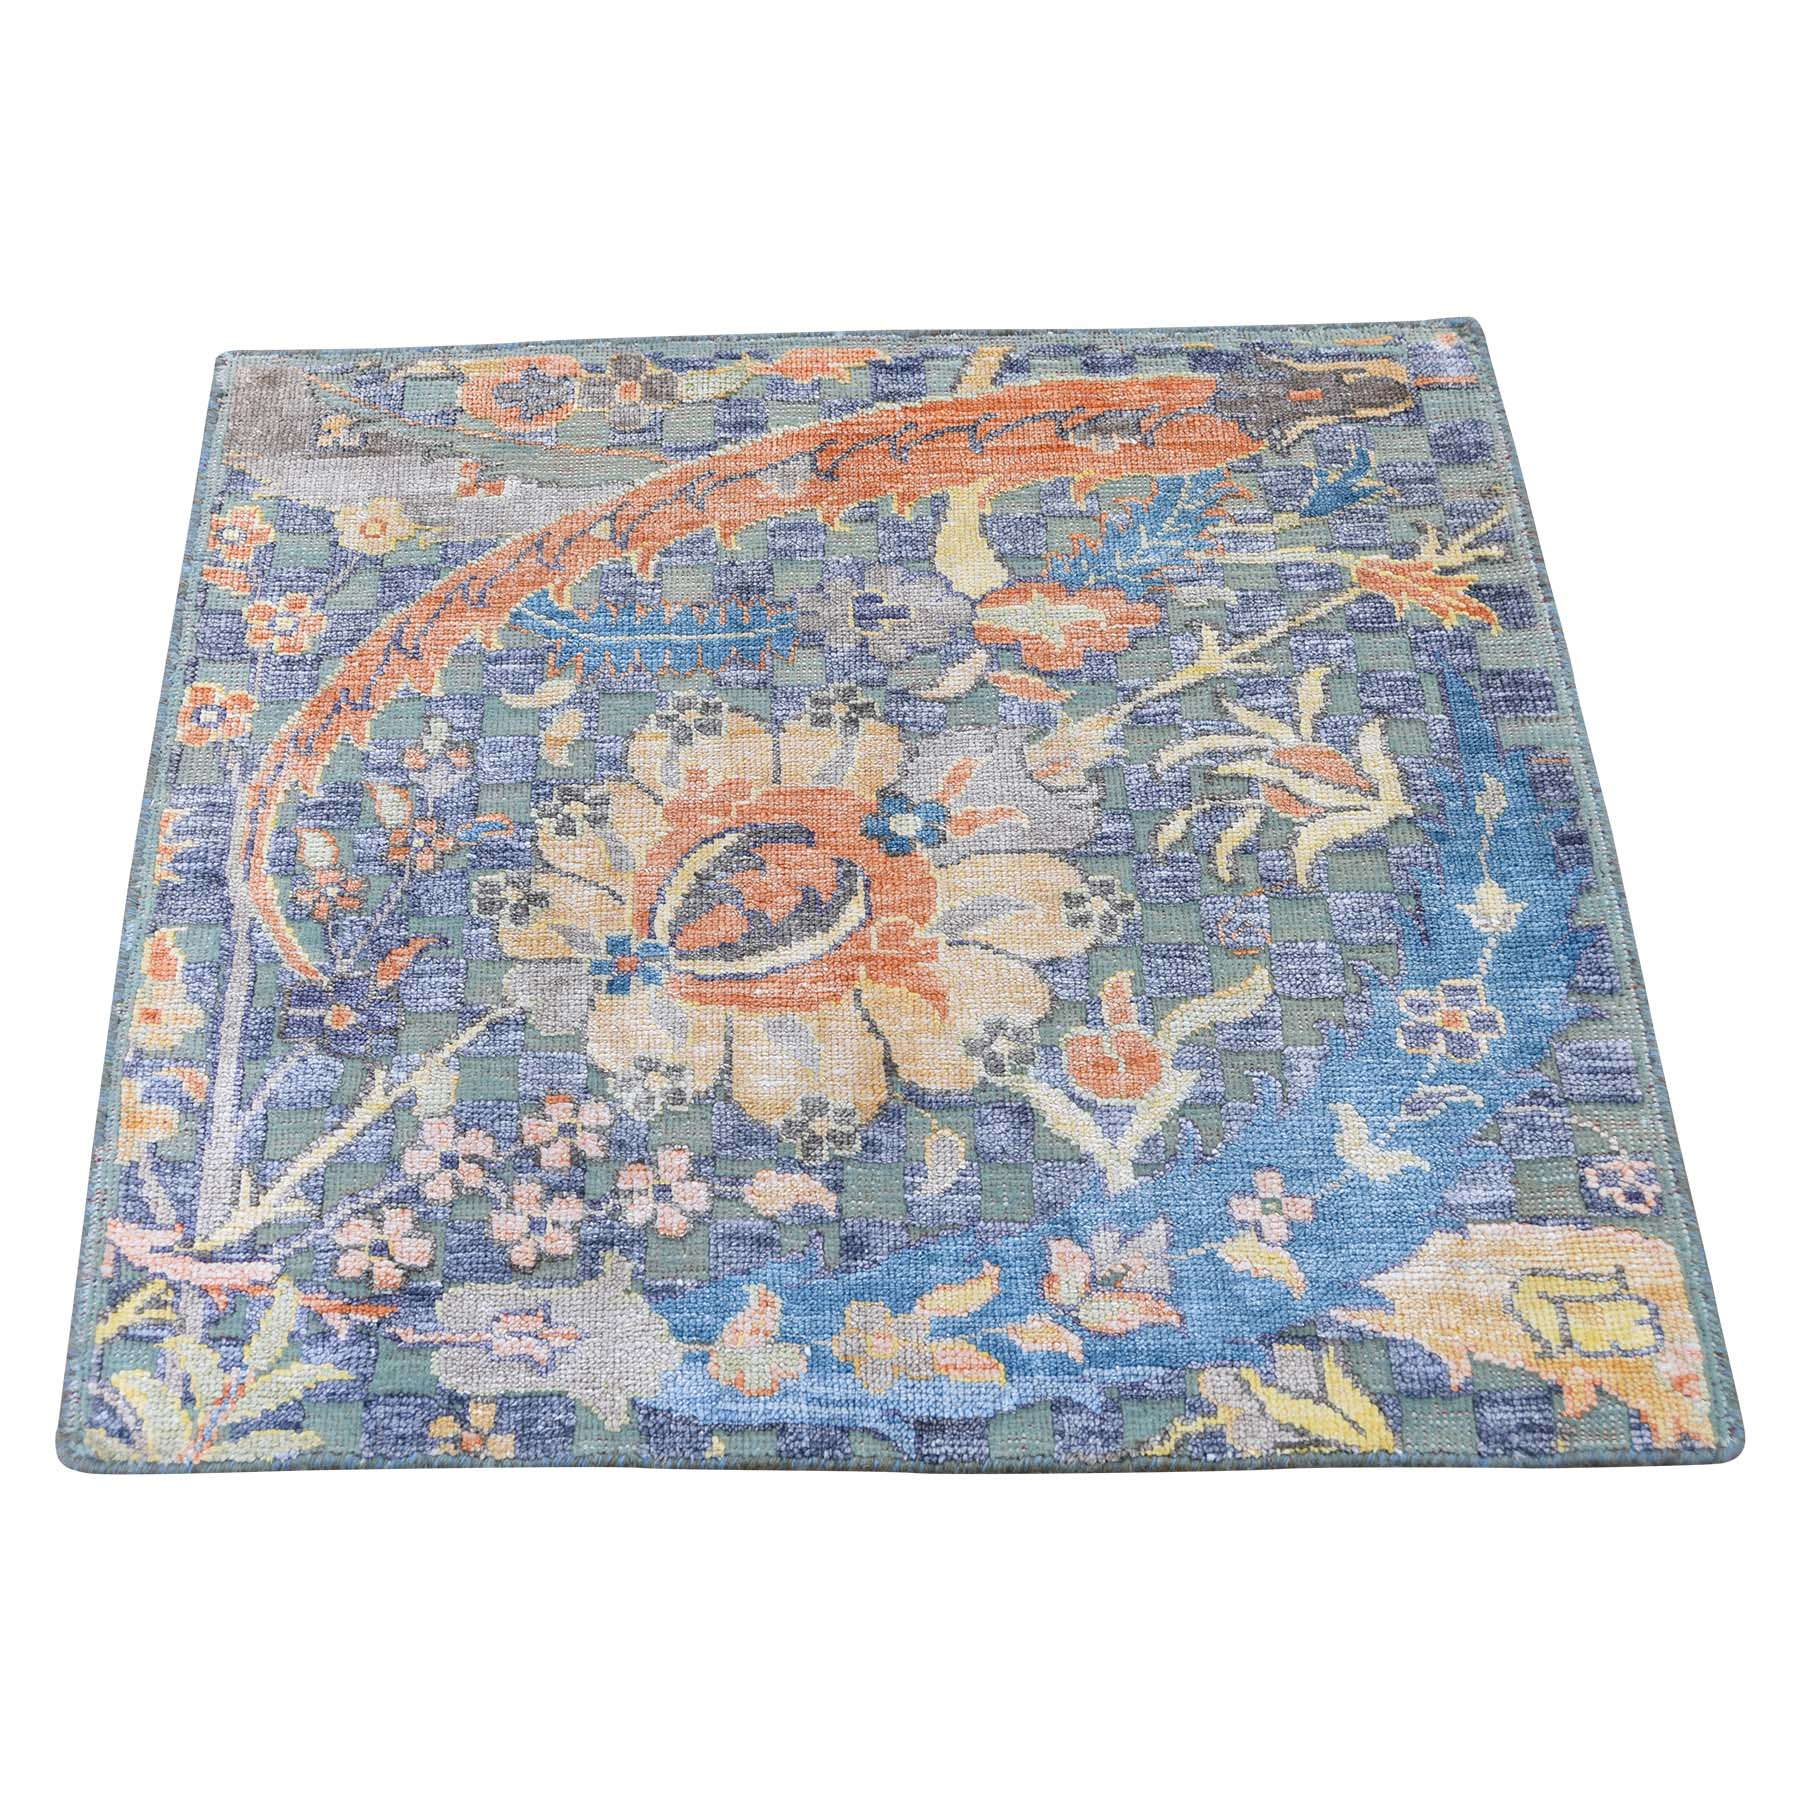 "2'2""x2'2"" Sickle Leaf Design Square Silk With Textured Wool Hand-Knotted Oriental Rug"